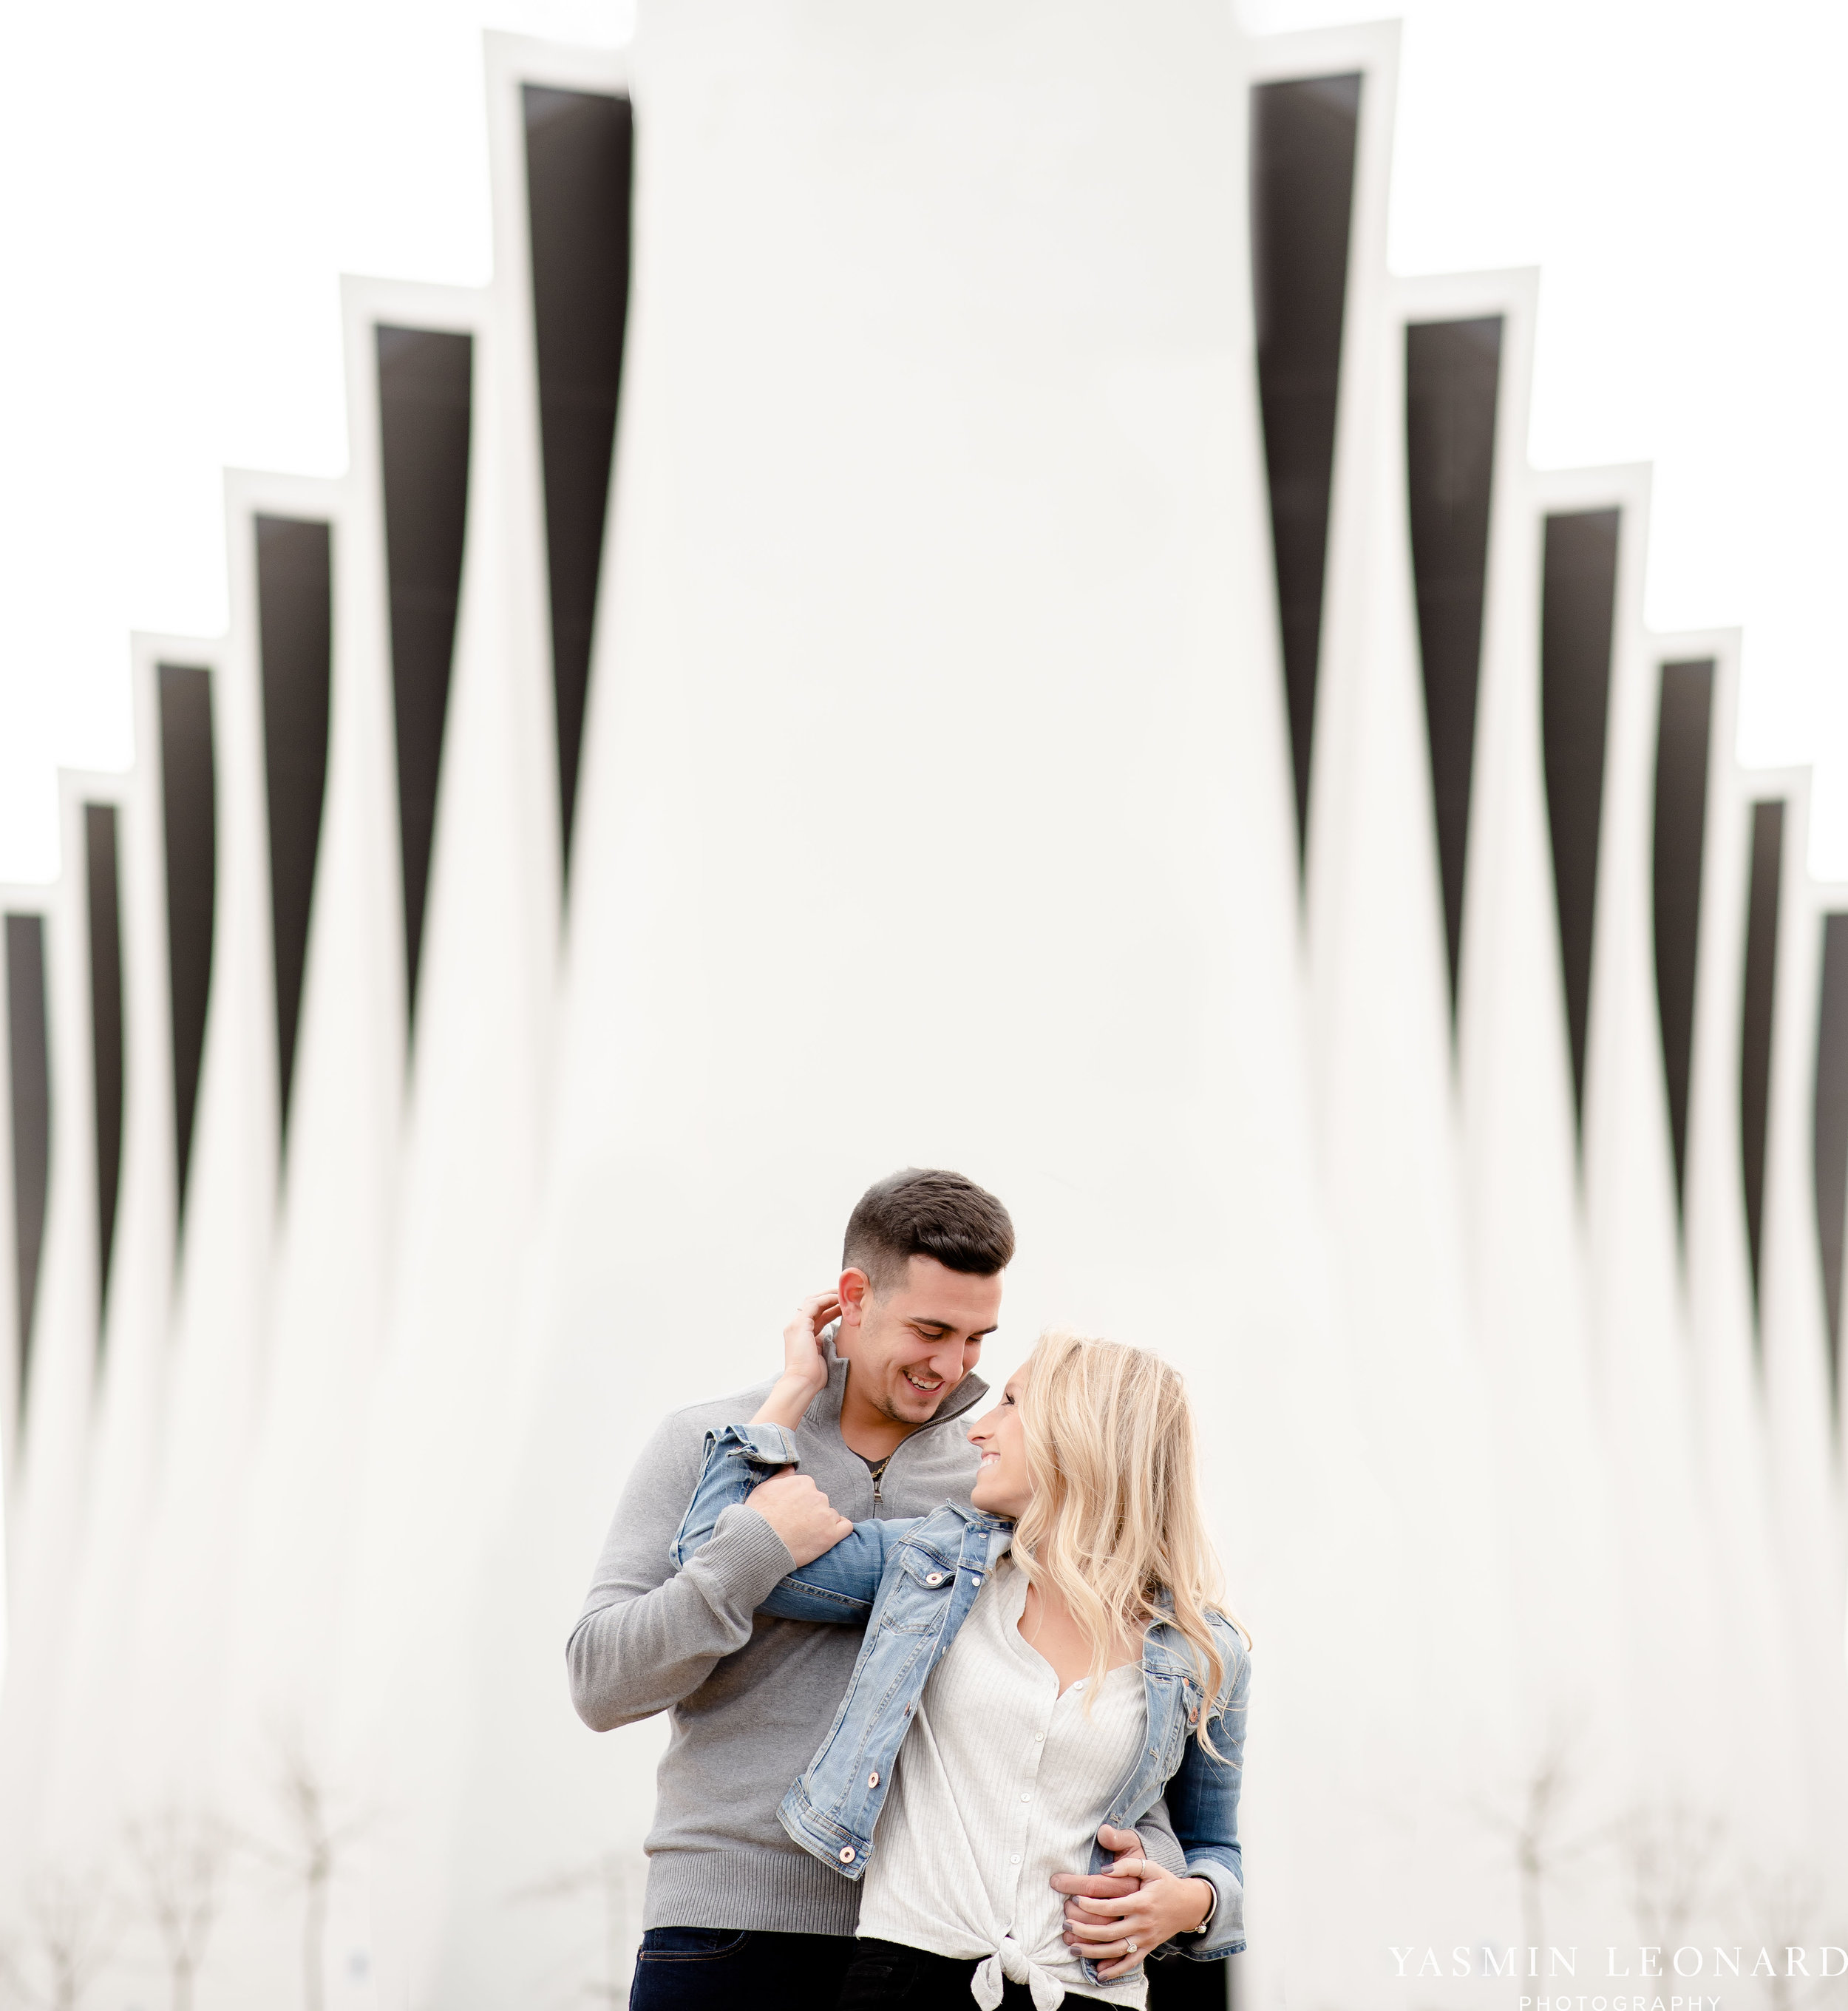 High Point Wedding Photographer - High Point Engagement PIctures - Engagement Session Ideas - Yasmin Leonard Photography - High Point Photographer - NC Wedding Photographer -28.jpg